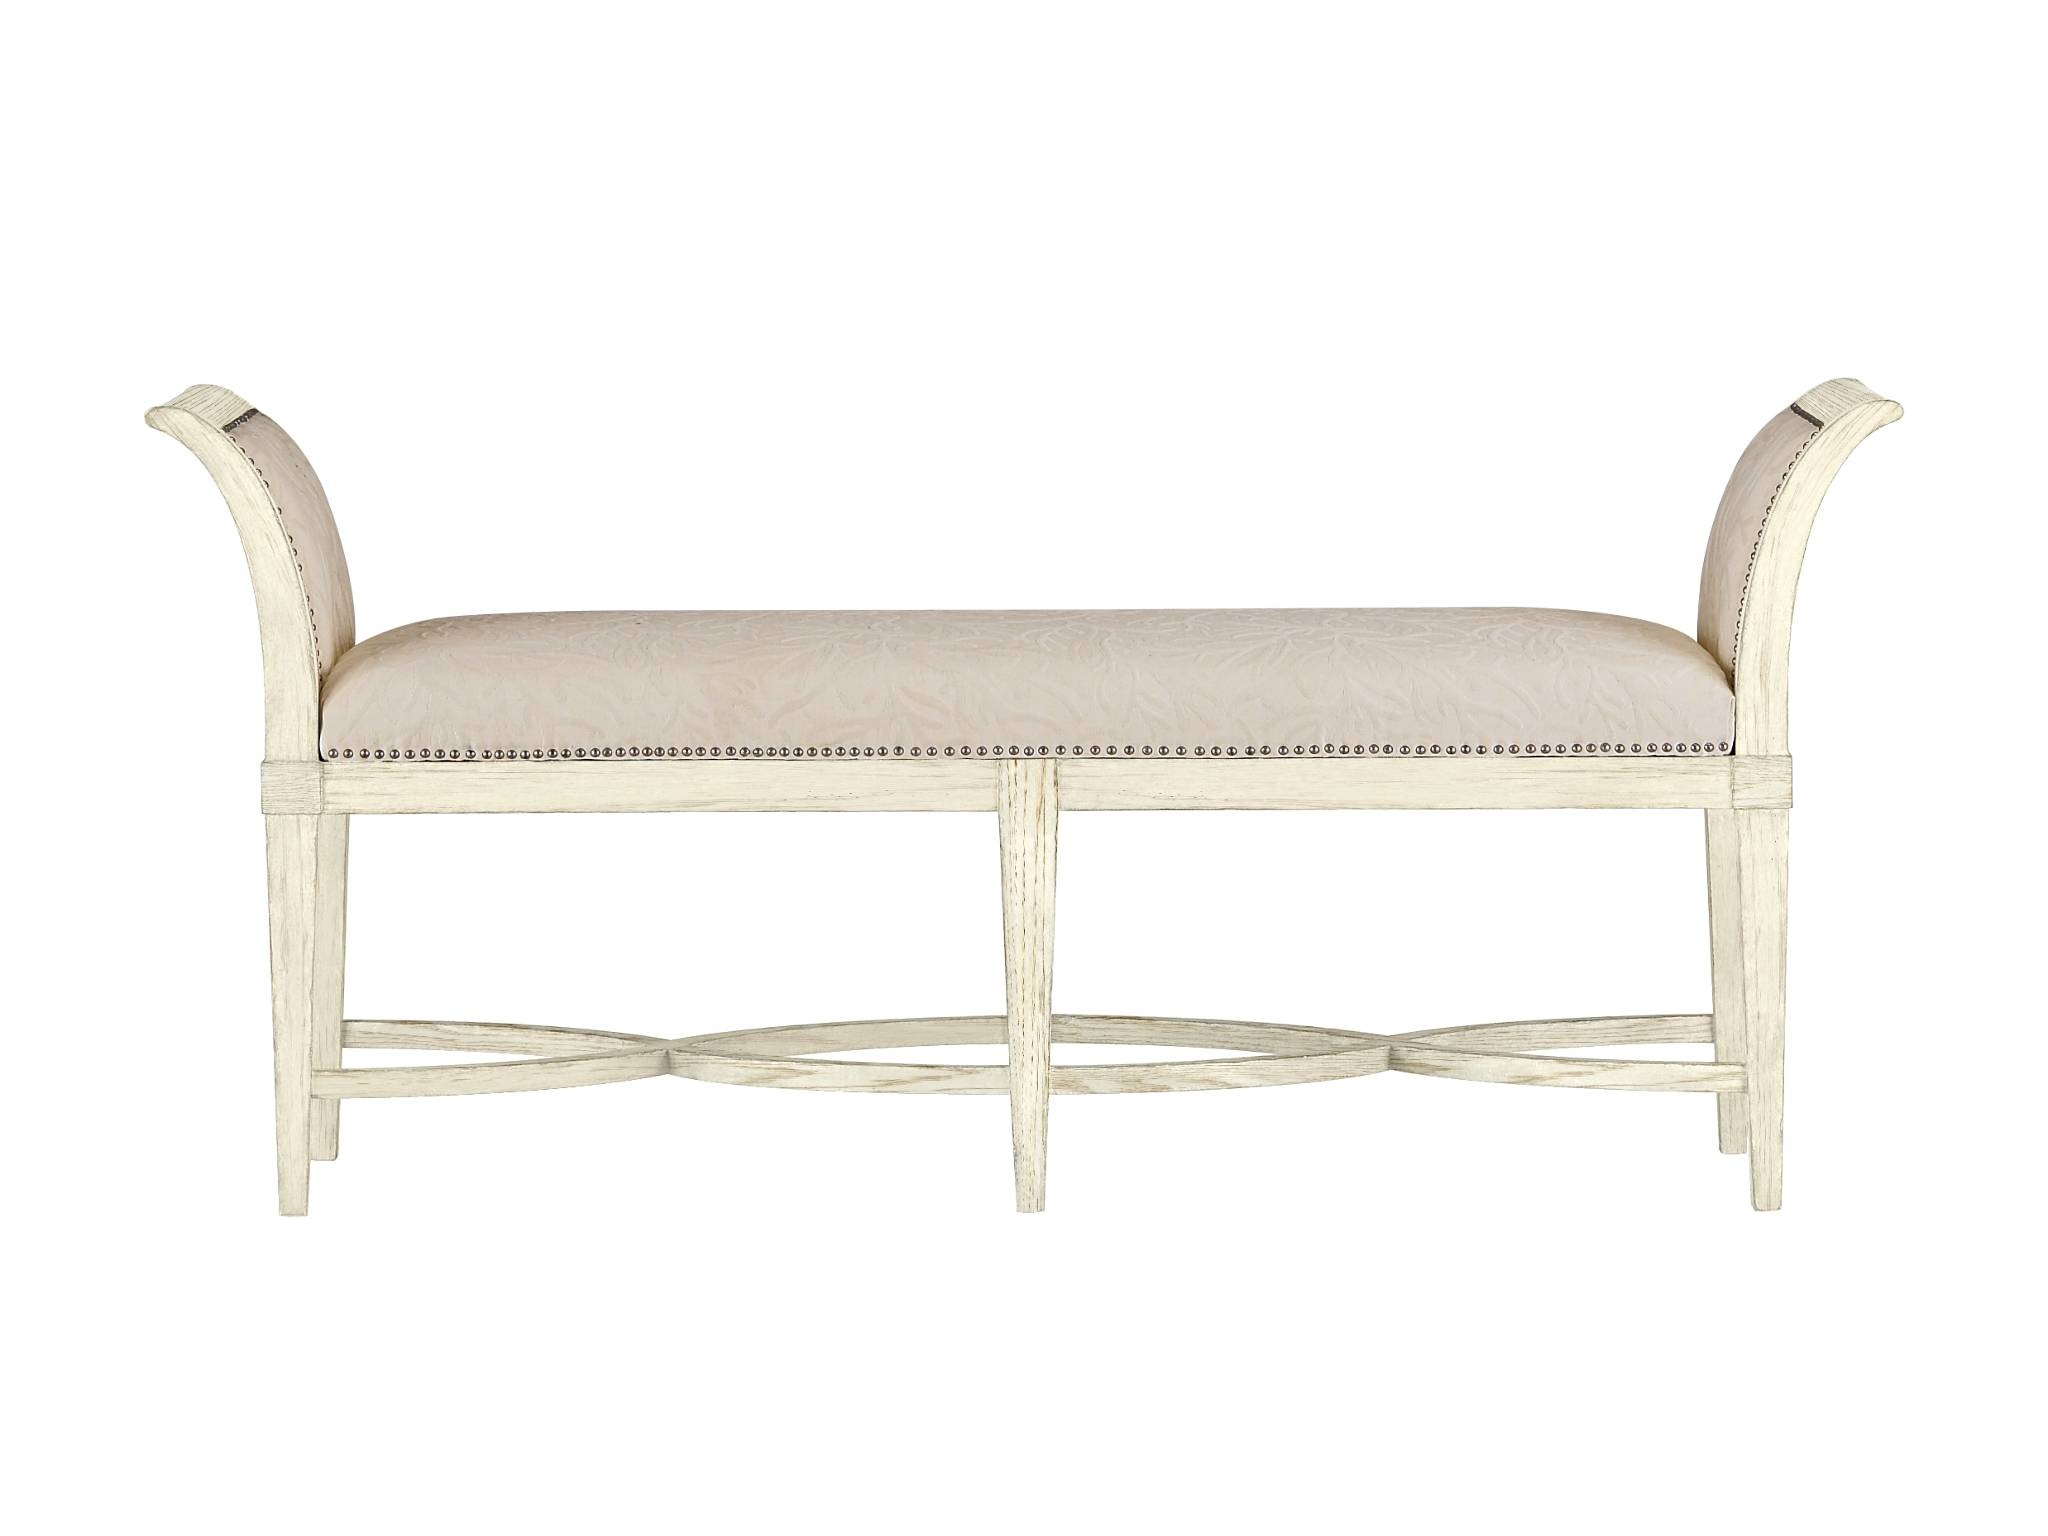 Elegant Coastal Living Surfside Bed End Bench 062 A3 72